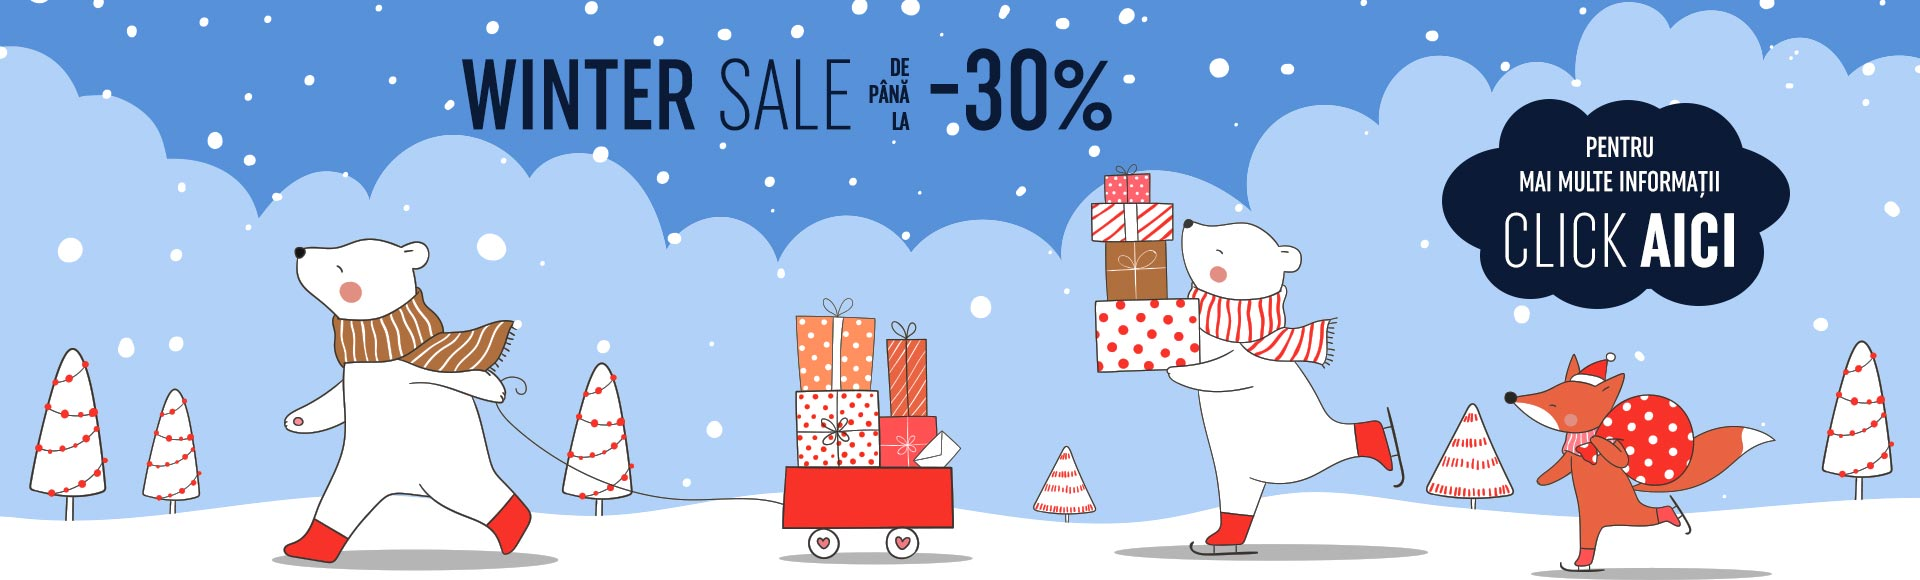 Winter sale -30%